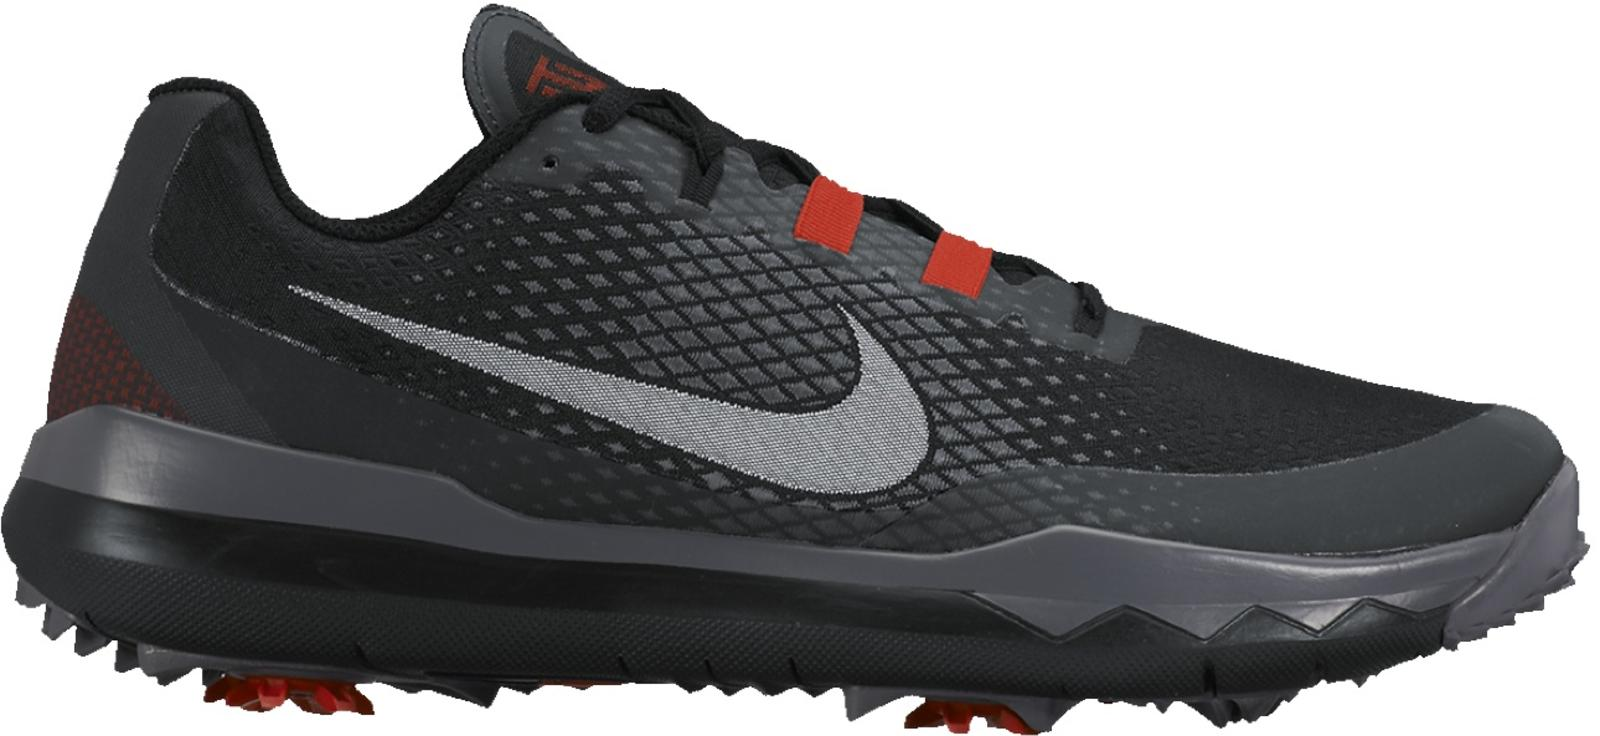 Tiger Woods Tennis Shoes